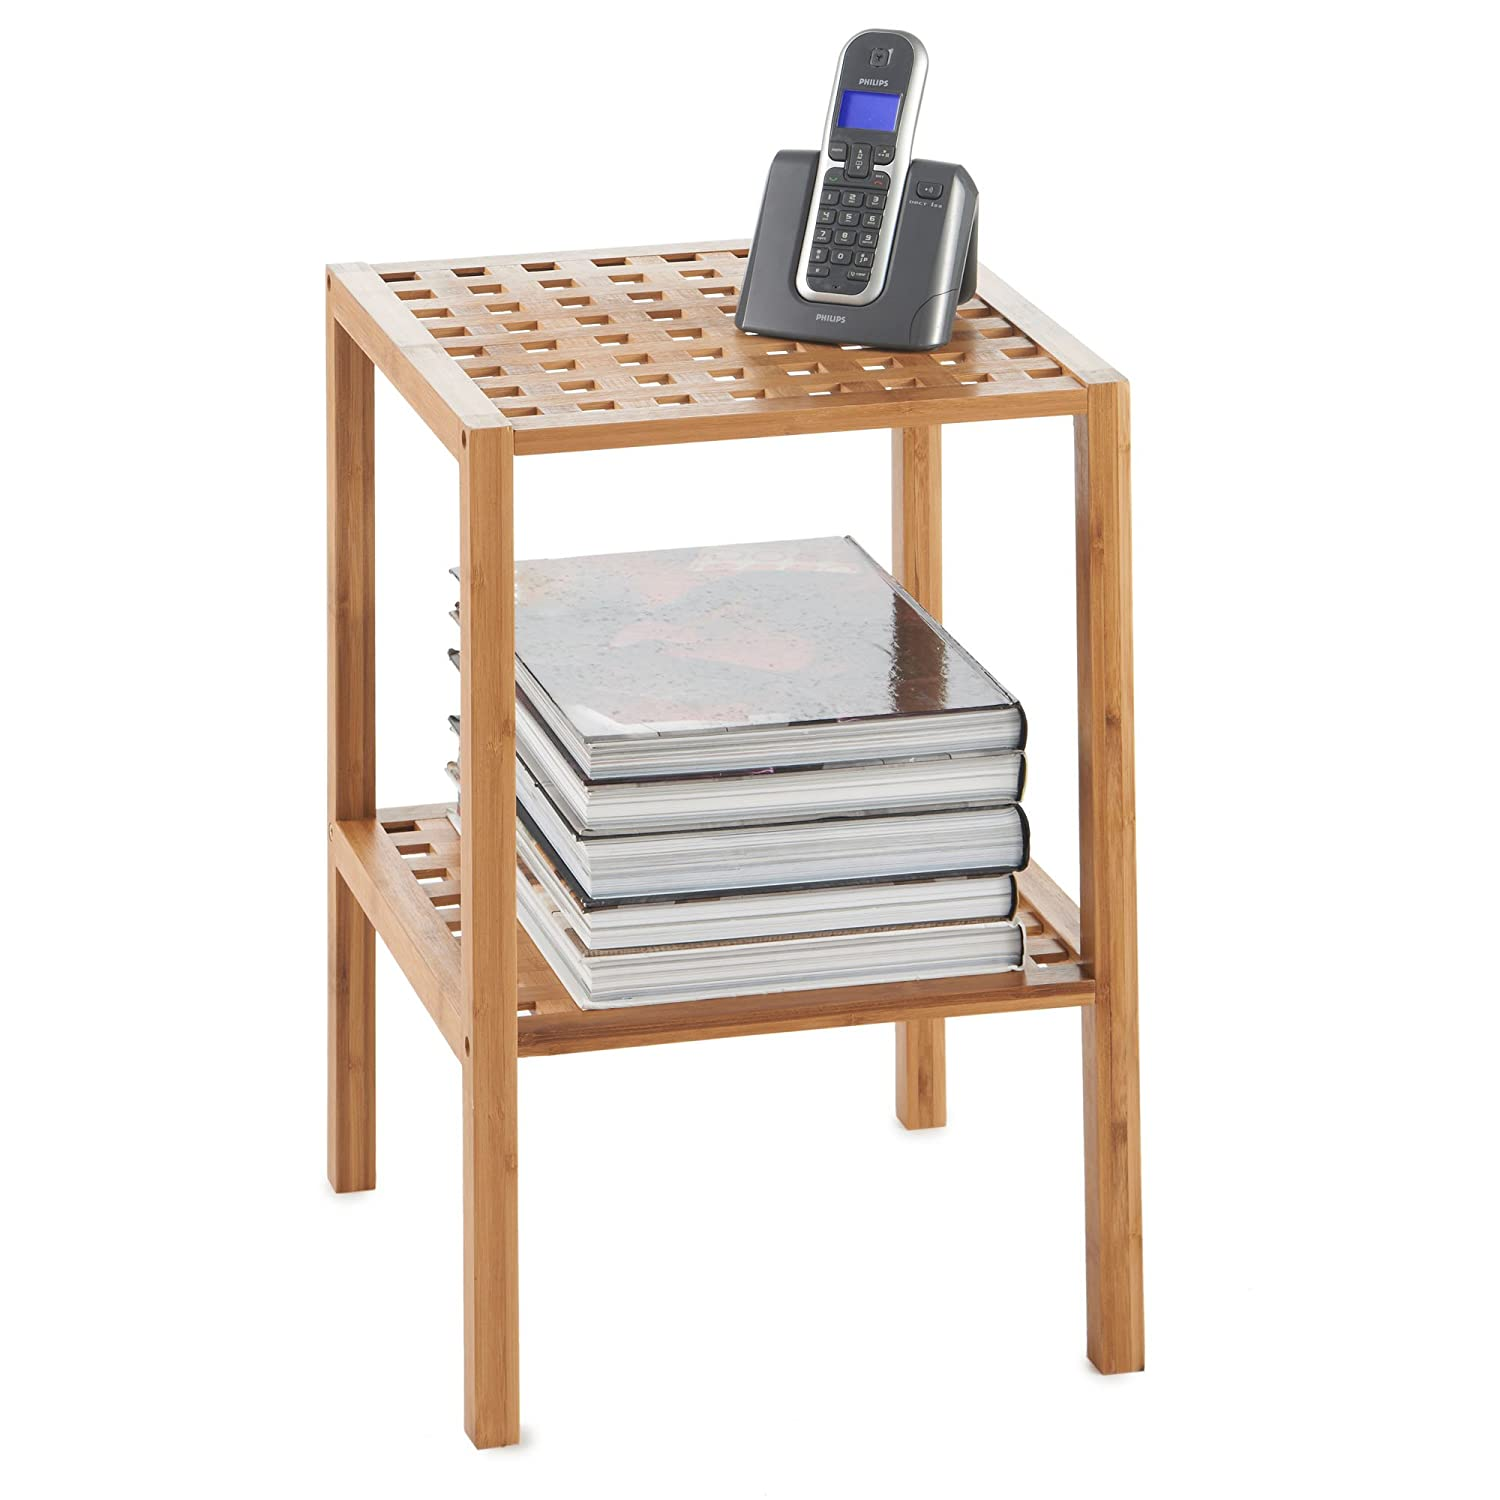 kitchen household rack essentials clothes bamboo amazon pwl brown home in shelf drying dp